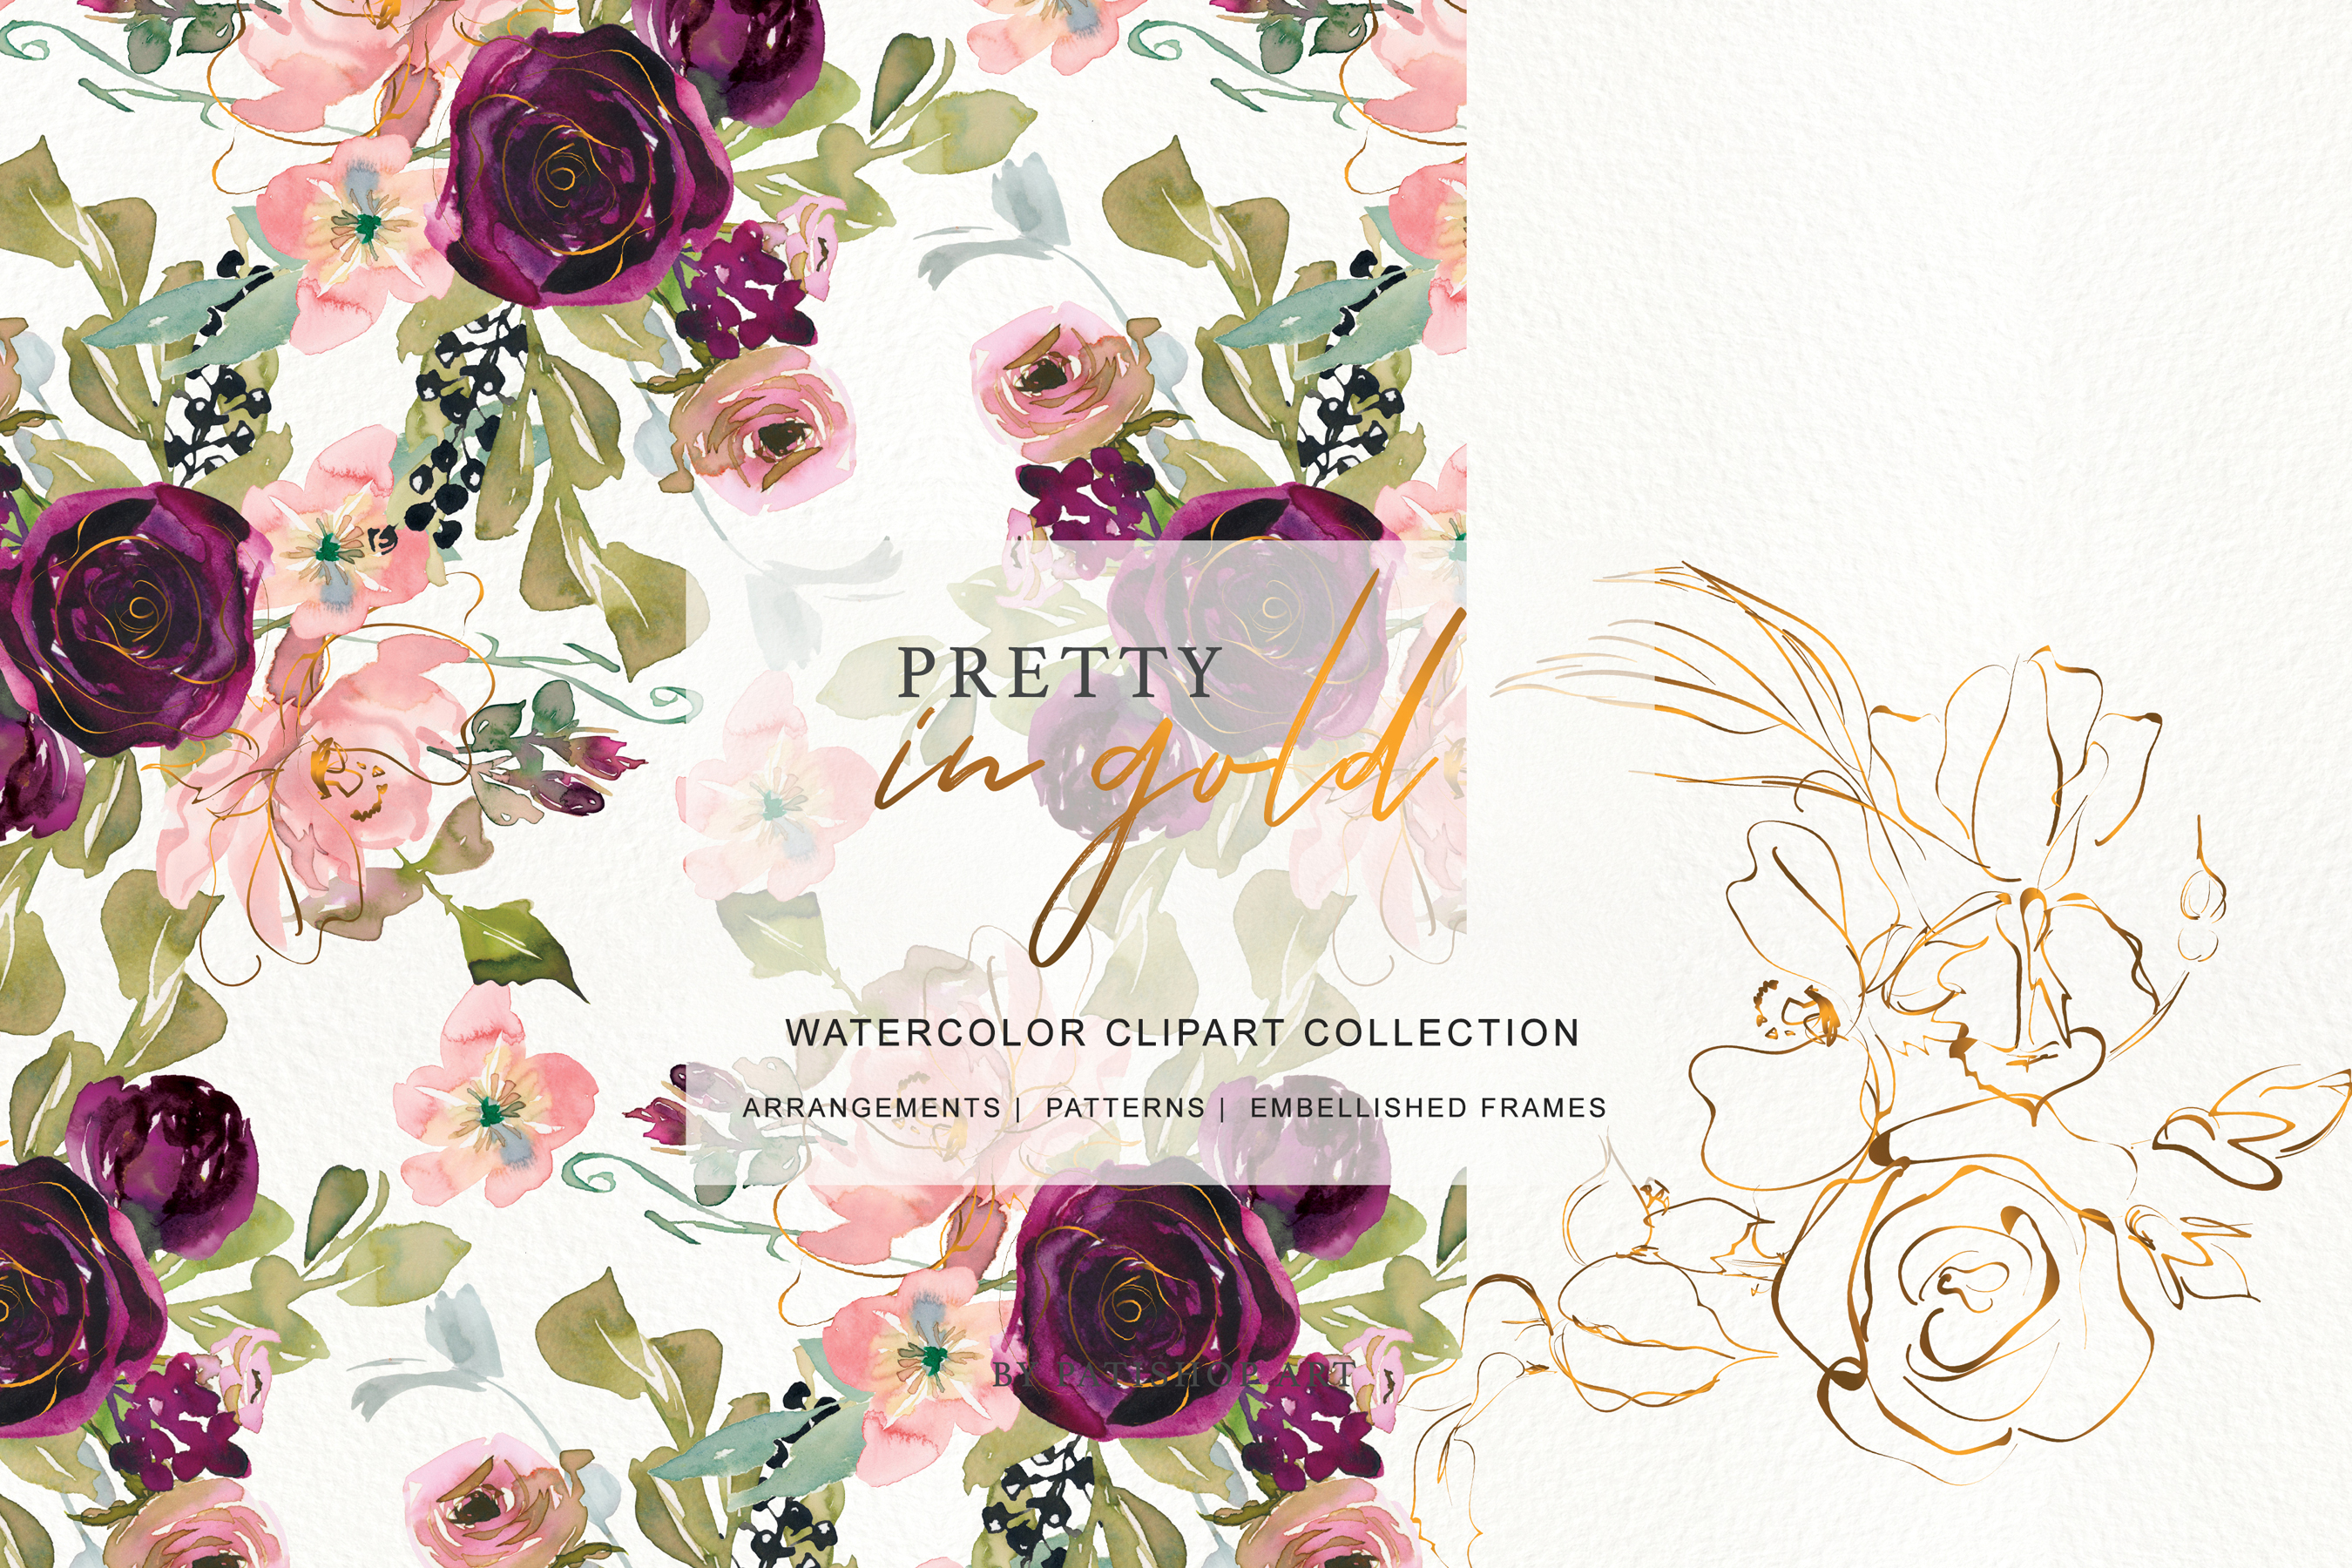 Watercolor Burgundy Blush and Gold Floral Bouquet Clipart example image 7